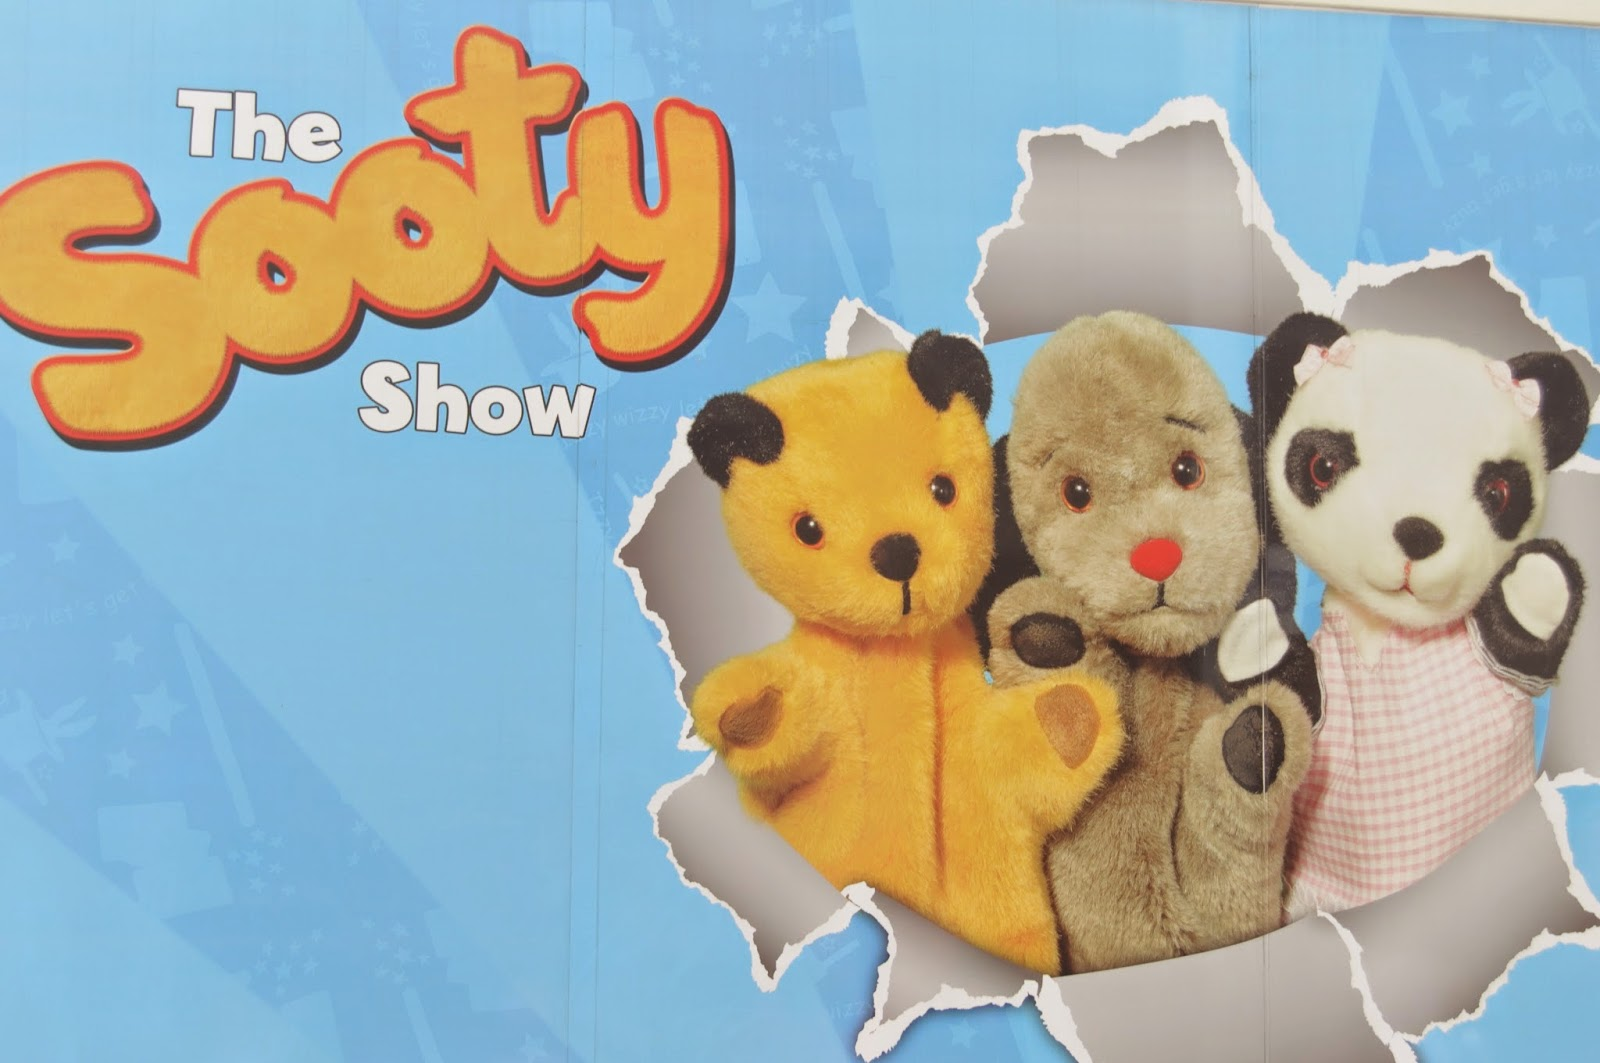 Sooty, Sweep and Soo! The Sooth Show Live!